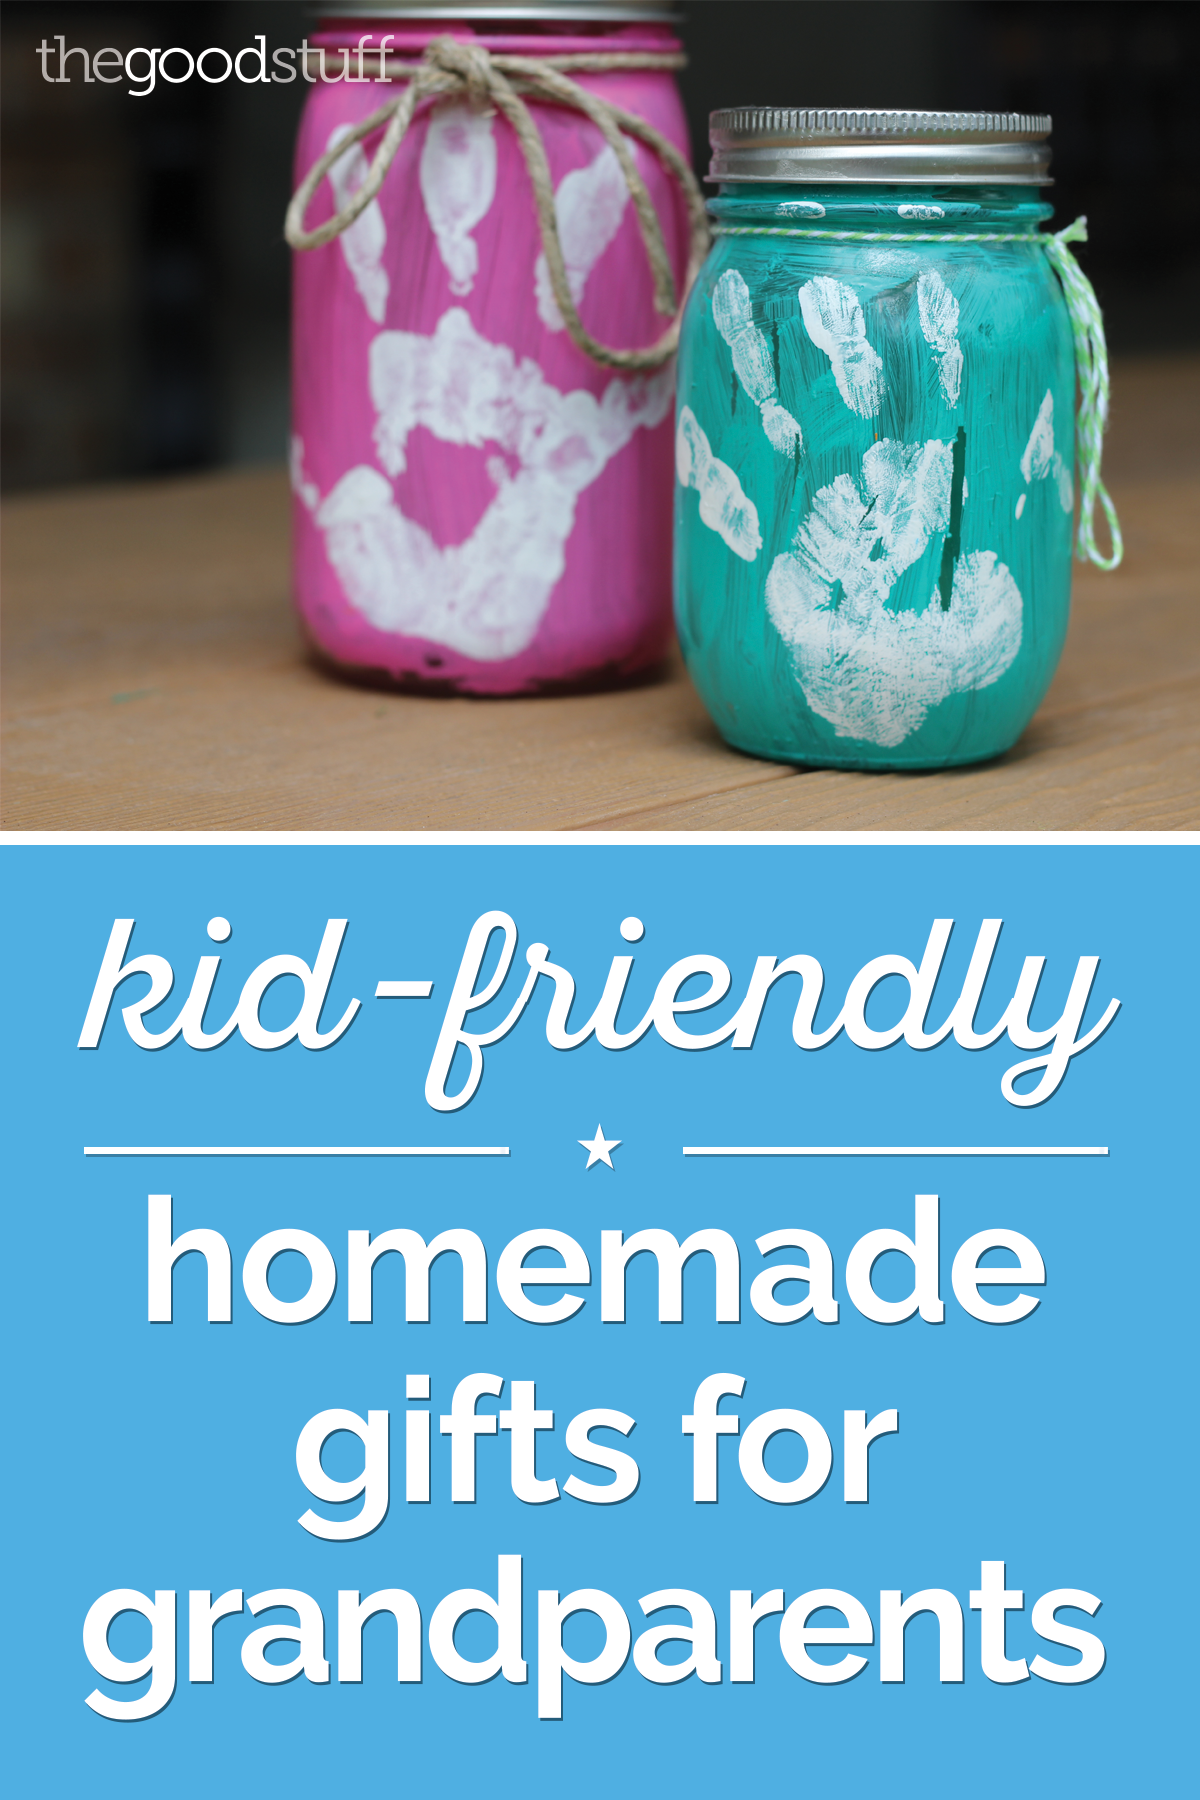 Amazing Christmas Craft Ideas For Grandparents Part - 4: Kid-Friendly Homemade Gifts For Grandparents | Thegoodstuff